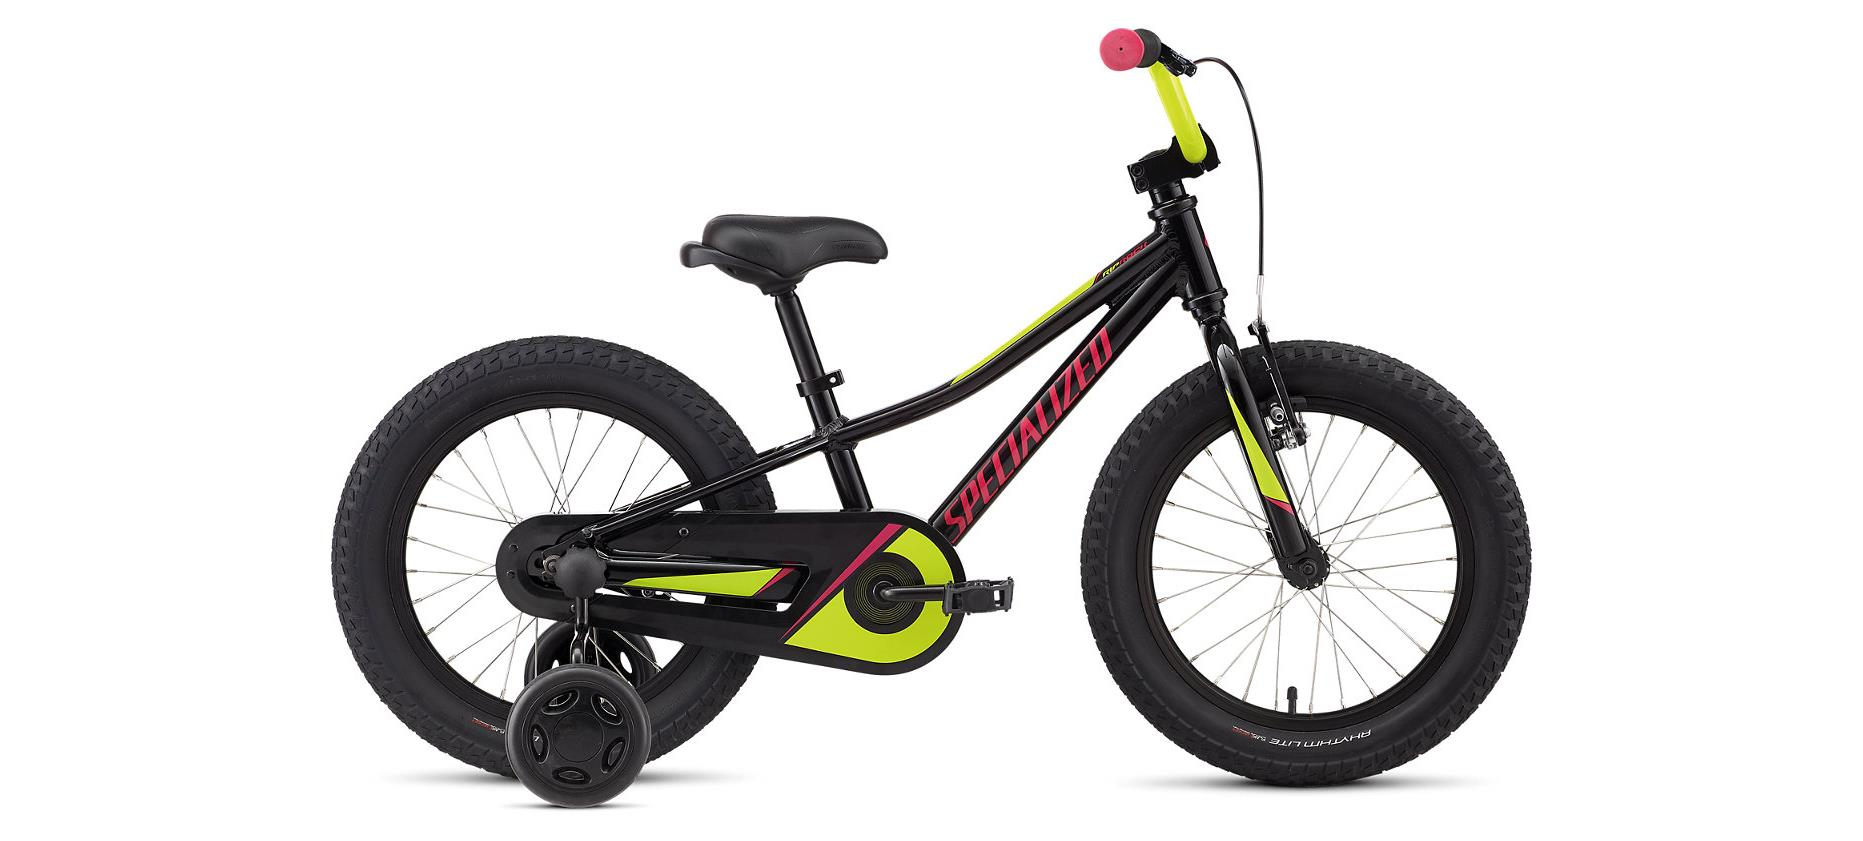 Specialized Riprock Coaster 16 Black Gold Pearl / Pearl Hyper Green / Pink 2020 - 16 -  16